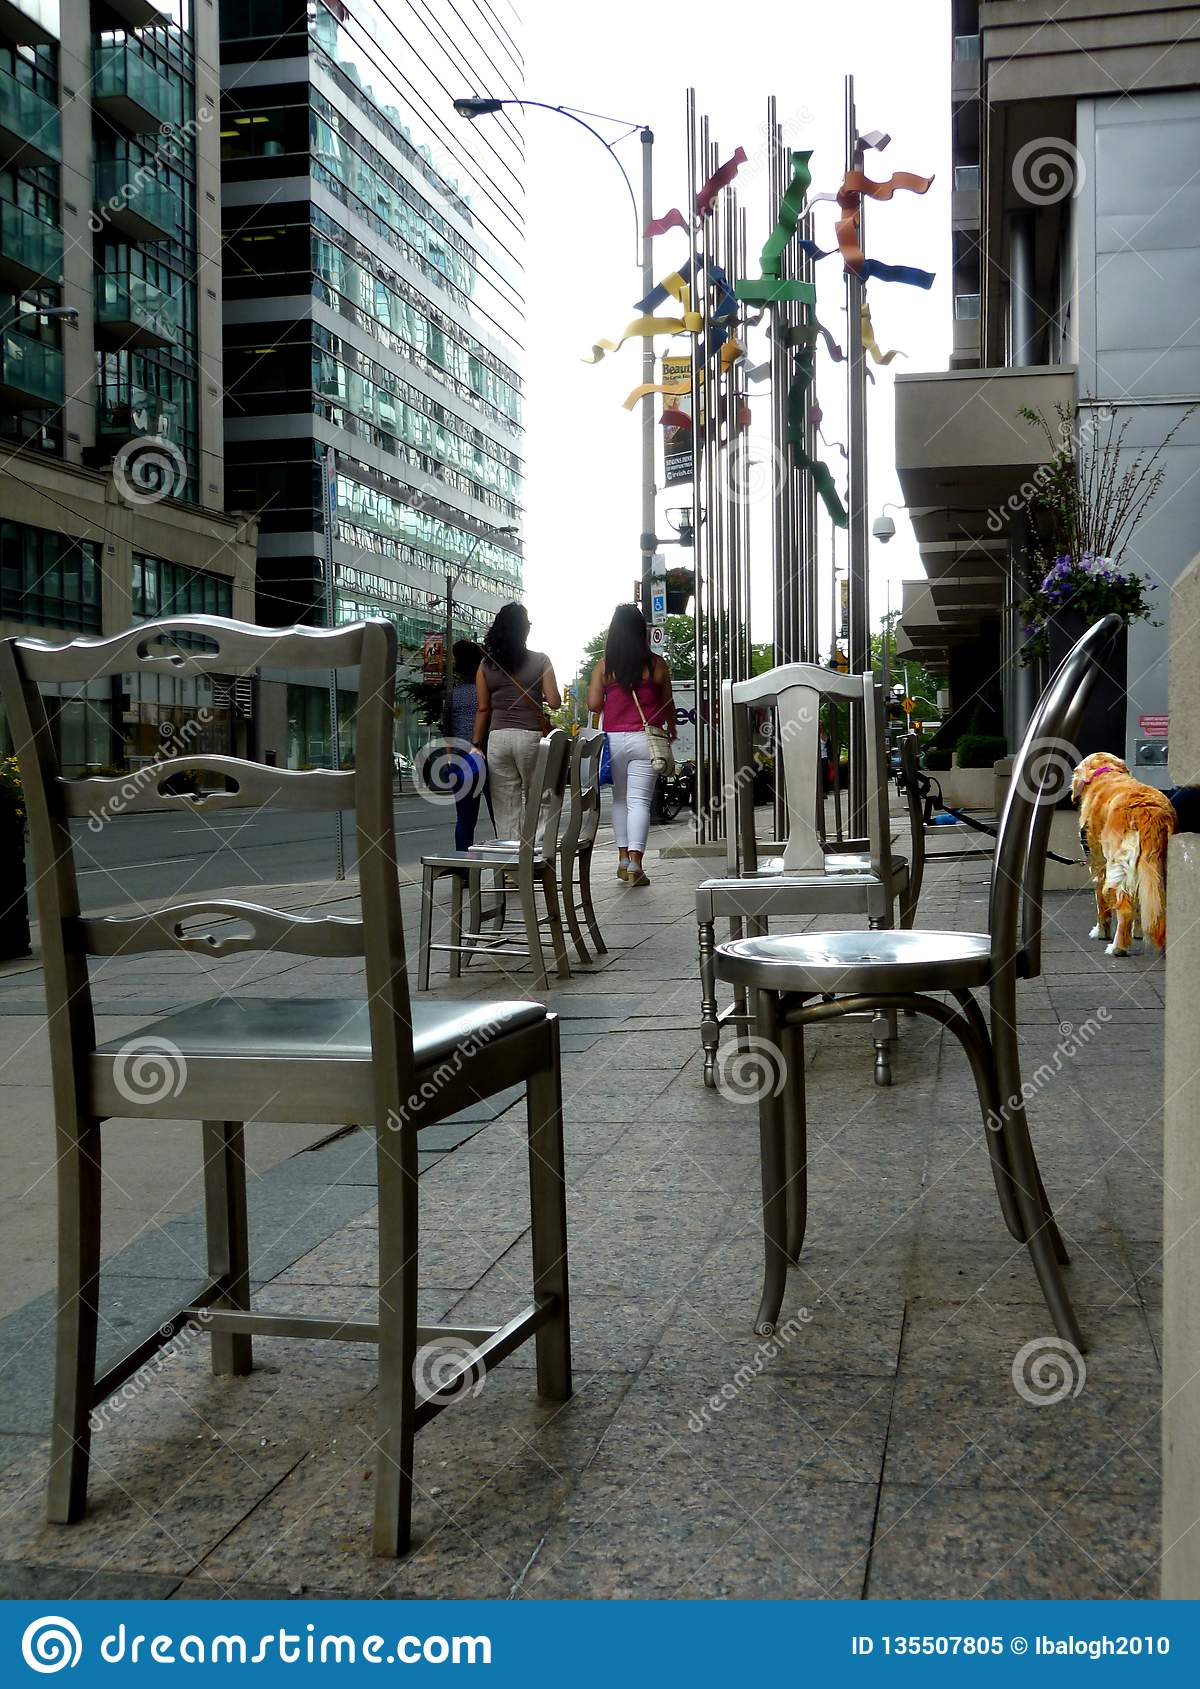 An urban dog`s life in the big city